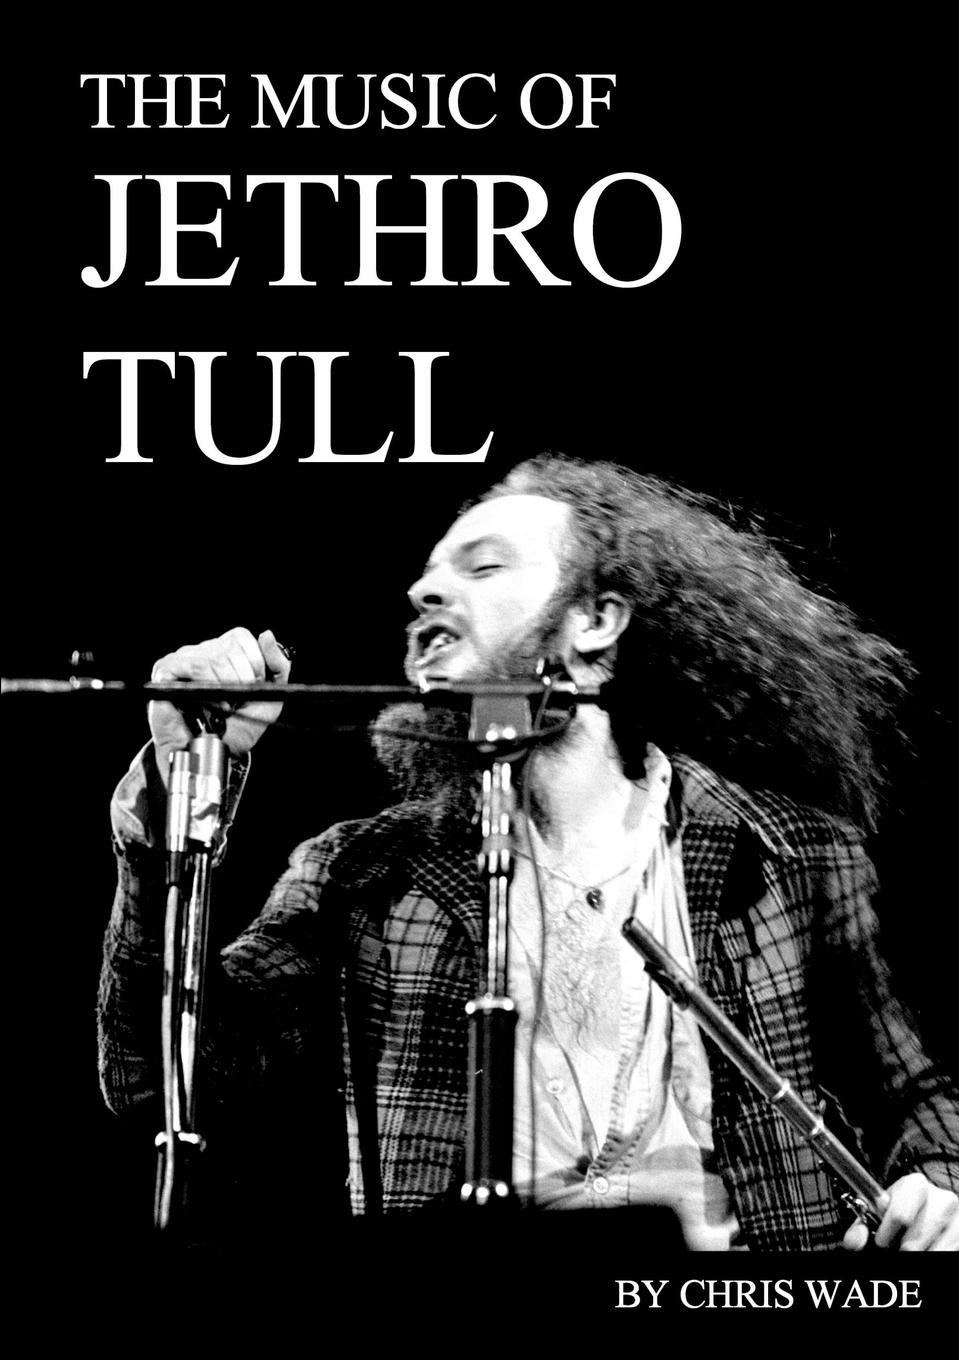 chris wade The Music of Jethro Tull